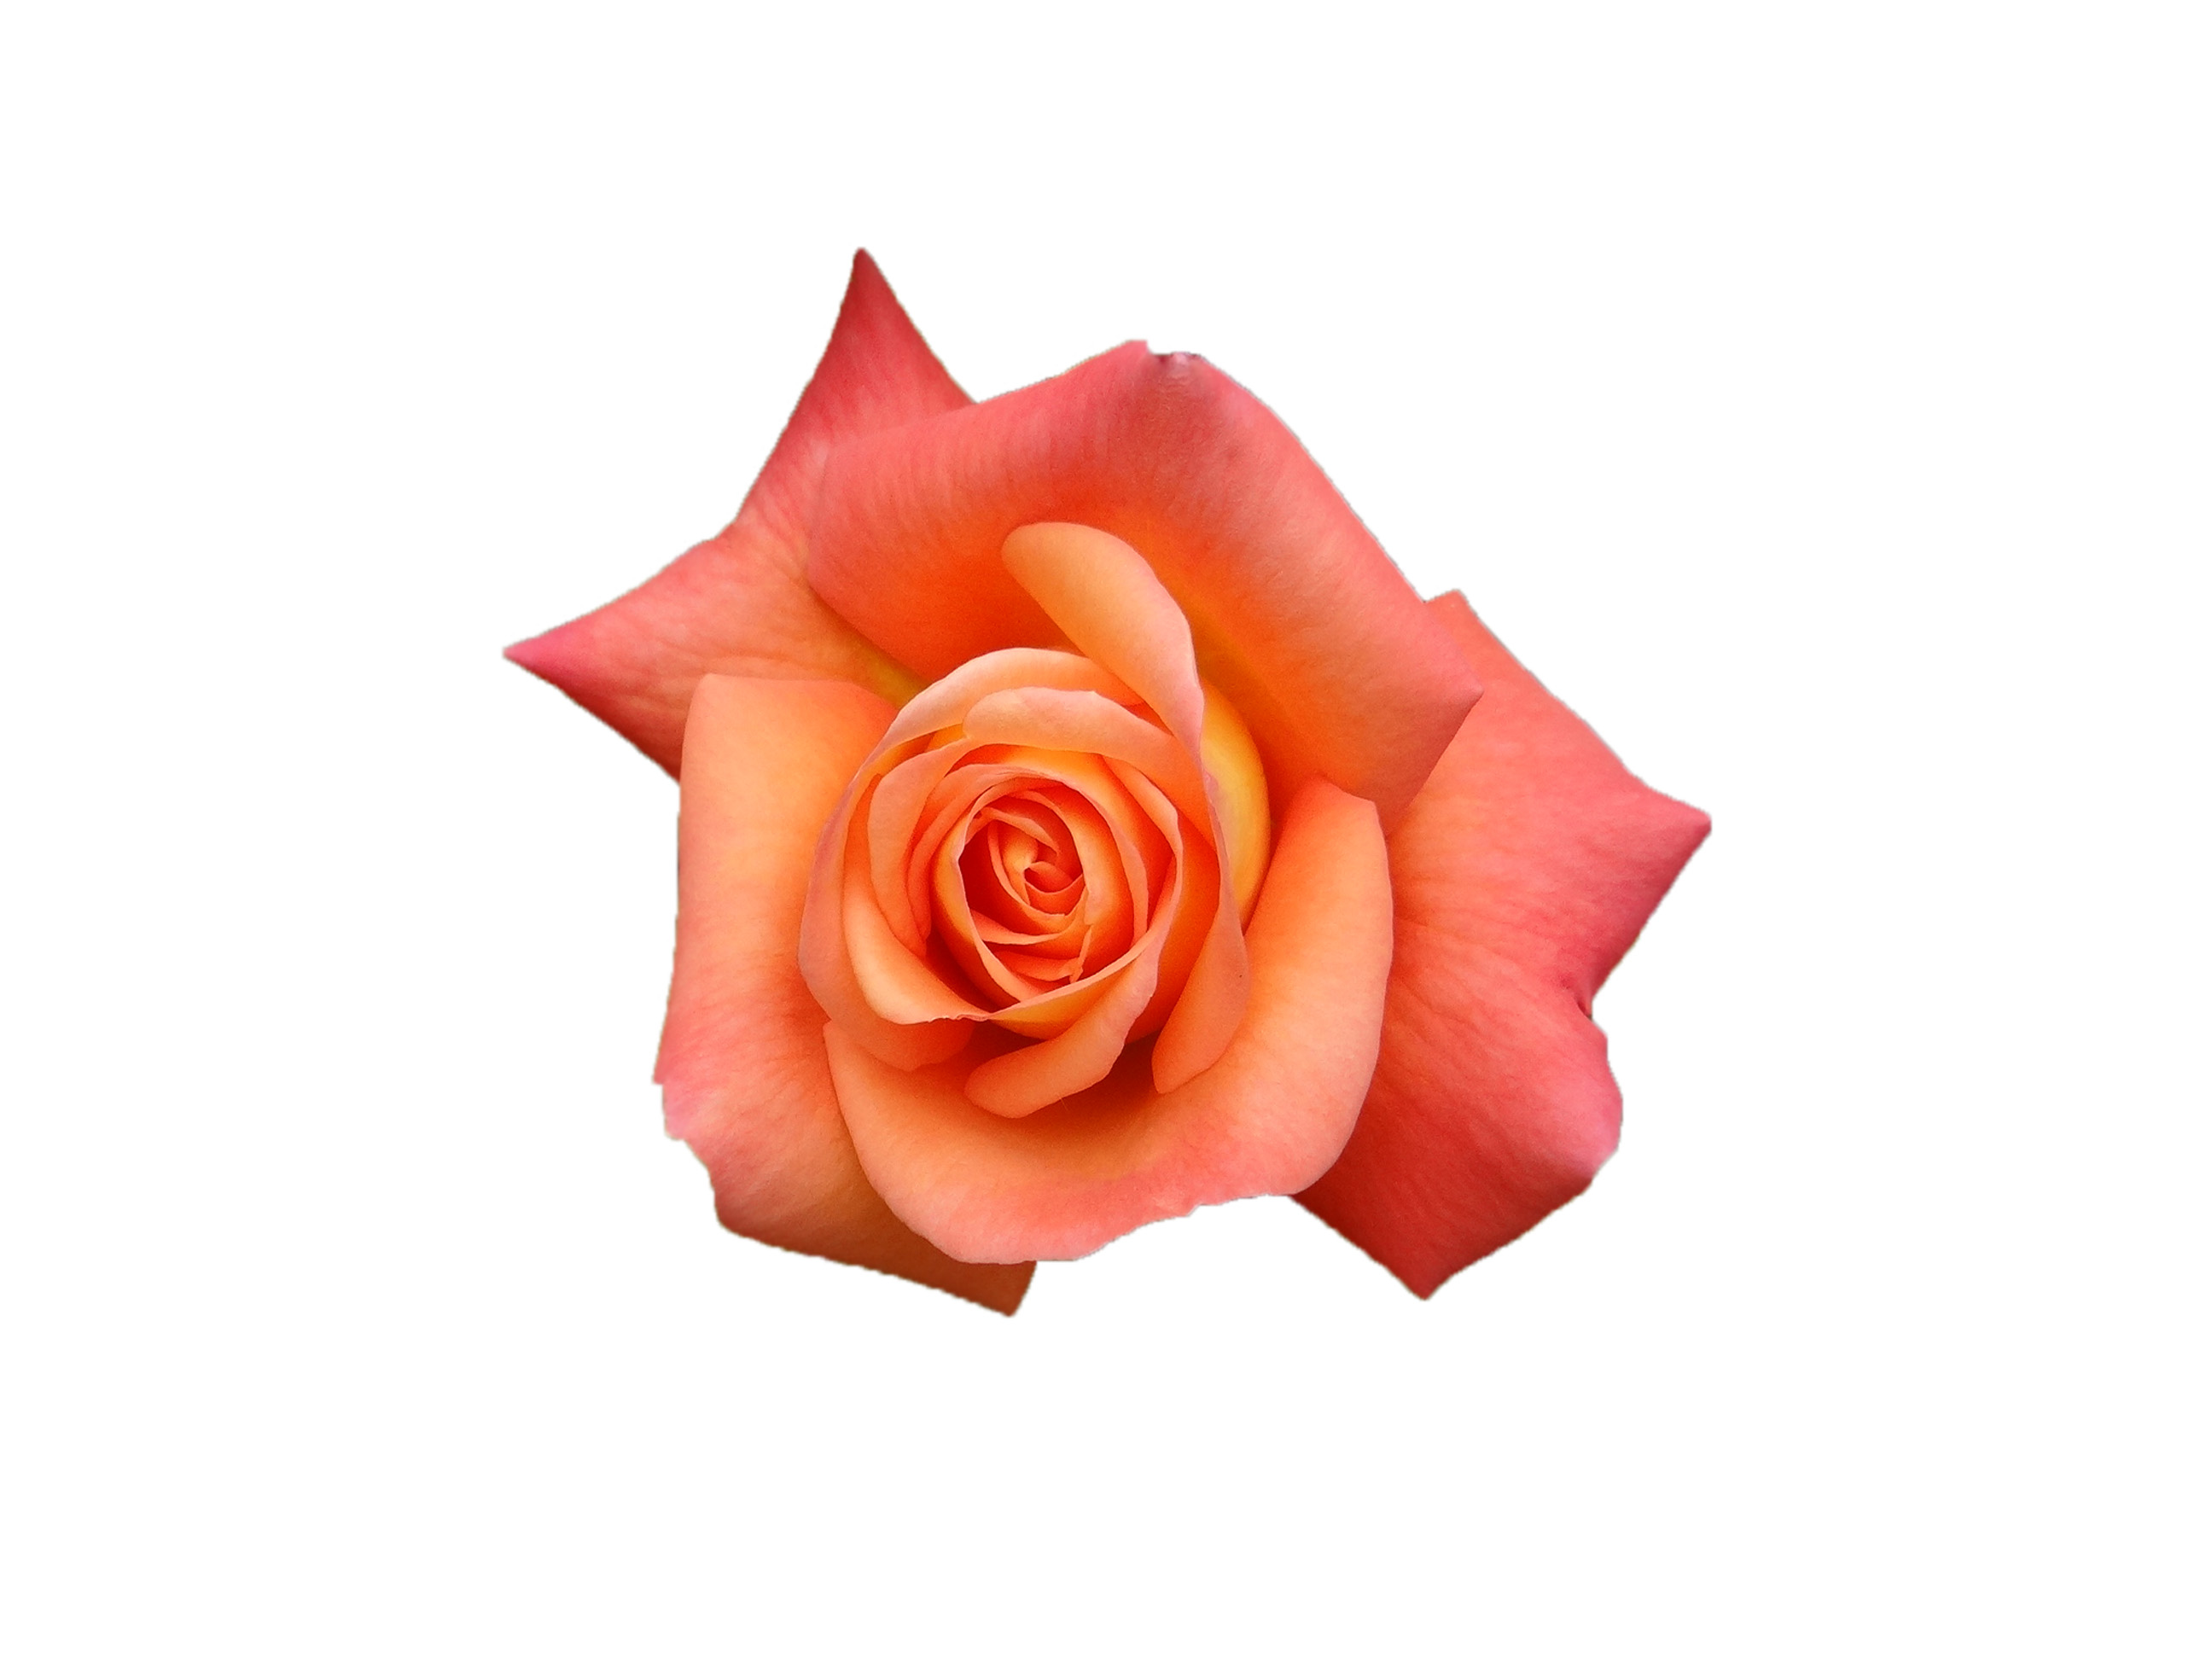 Red rose, Flower, Red, Rose, HQ Photo